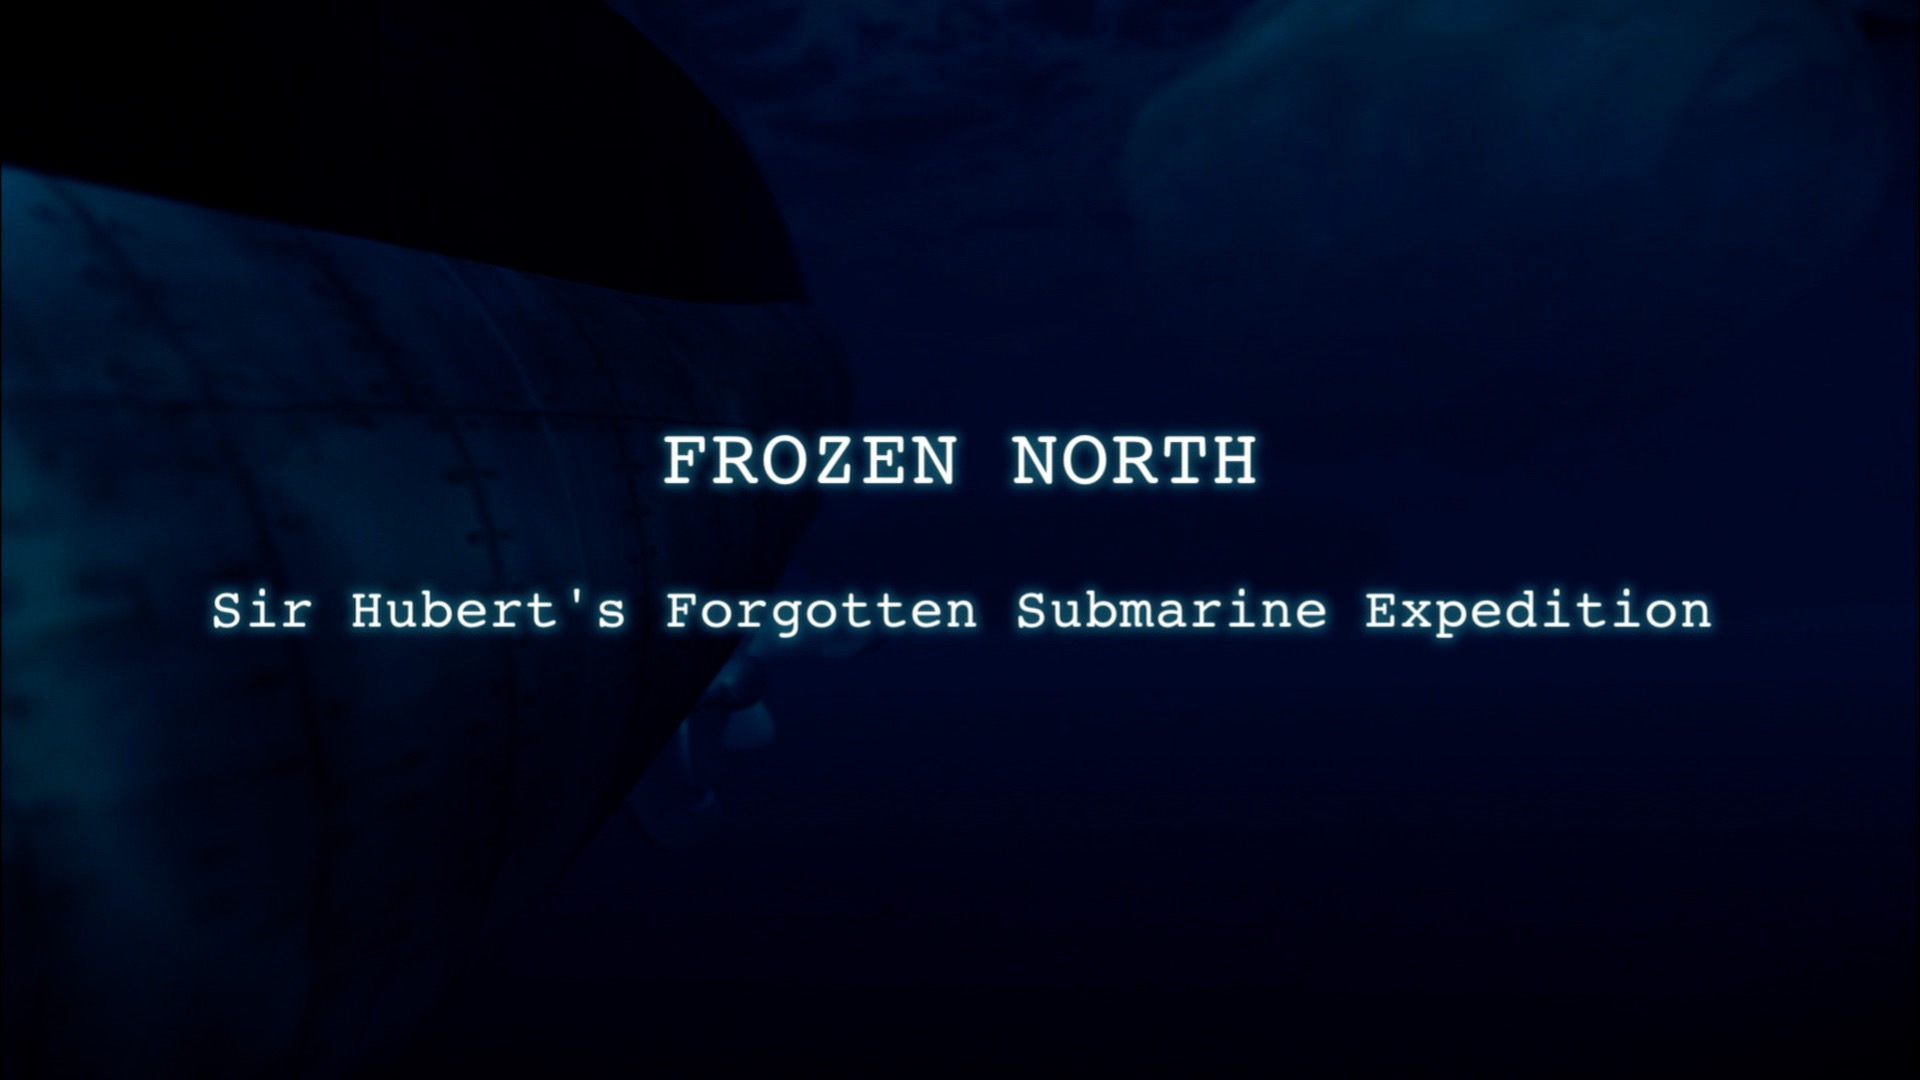 Frozen North: Sir Hubert's Forgotten Submarine Expedition